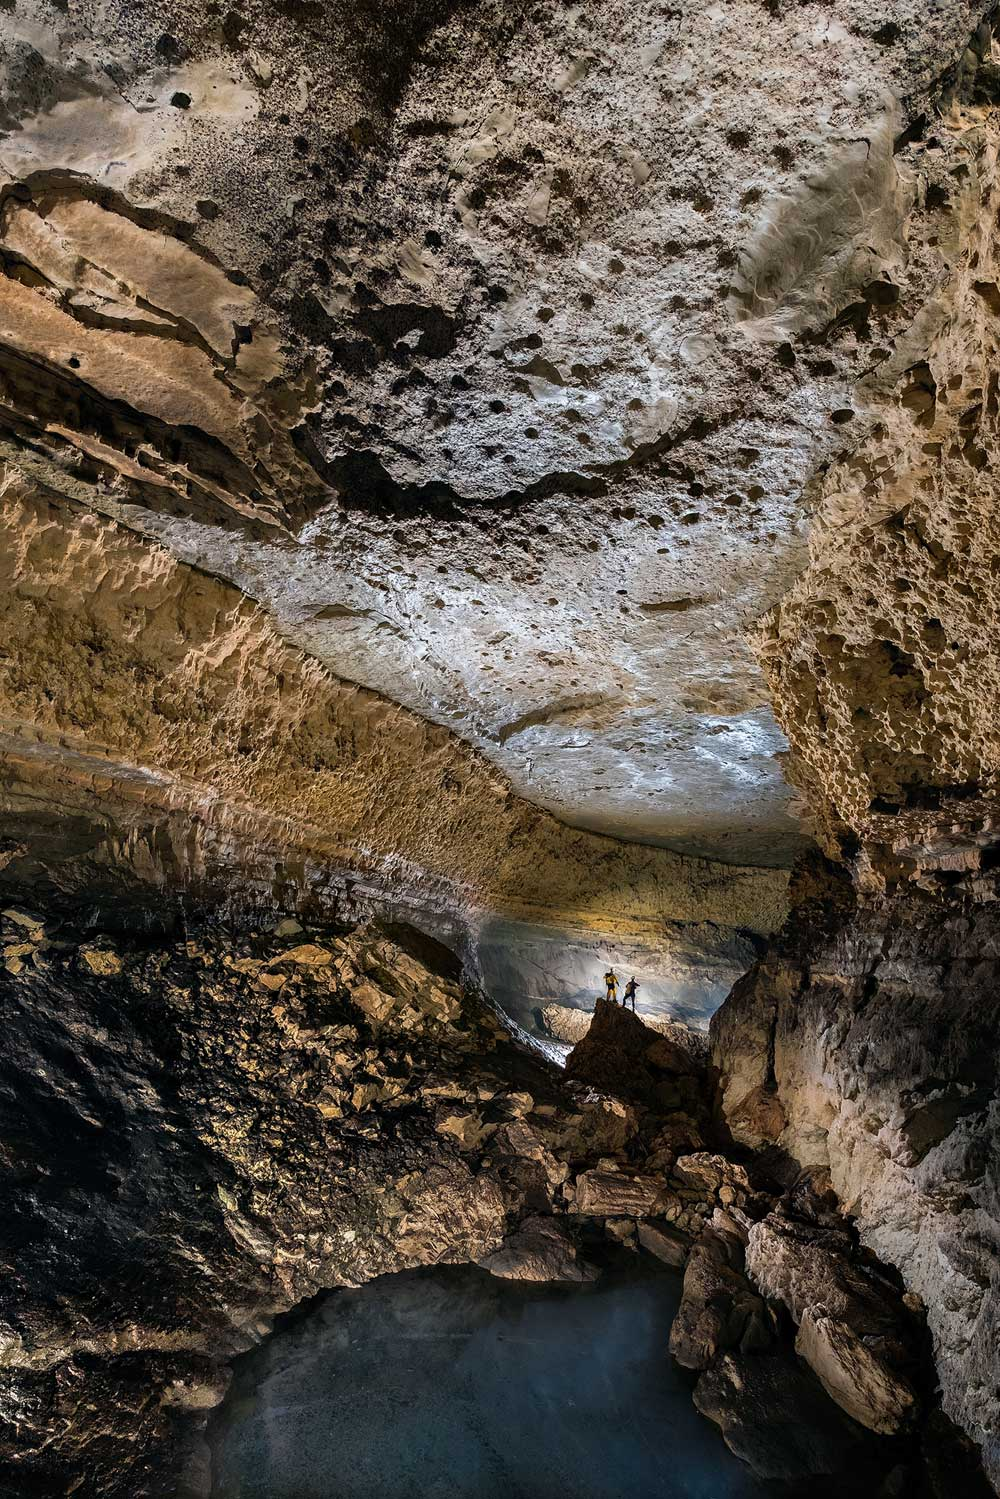 La grotte de Tubagua, interminable exploration ! (photo Rémi Flament)